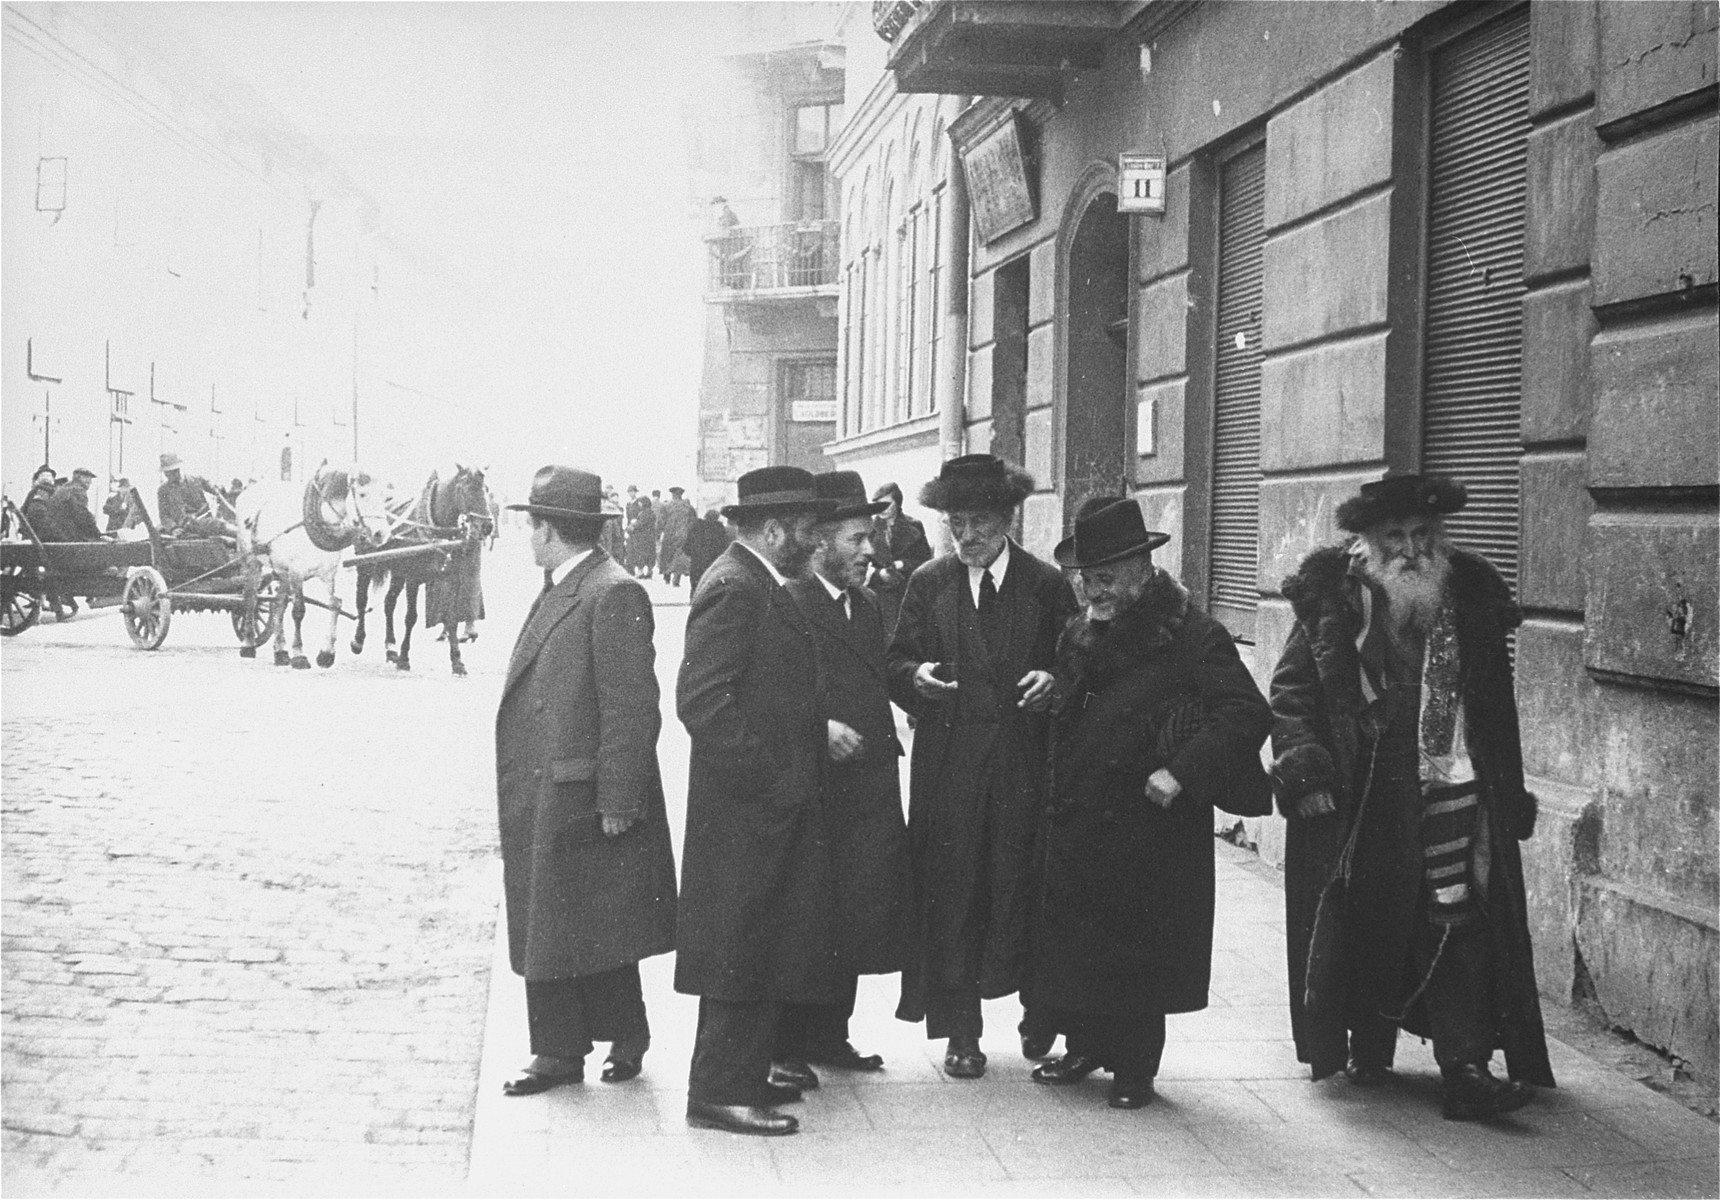 Religious Jews converse on a street corner in the Kazimierz quarter of Krakow.